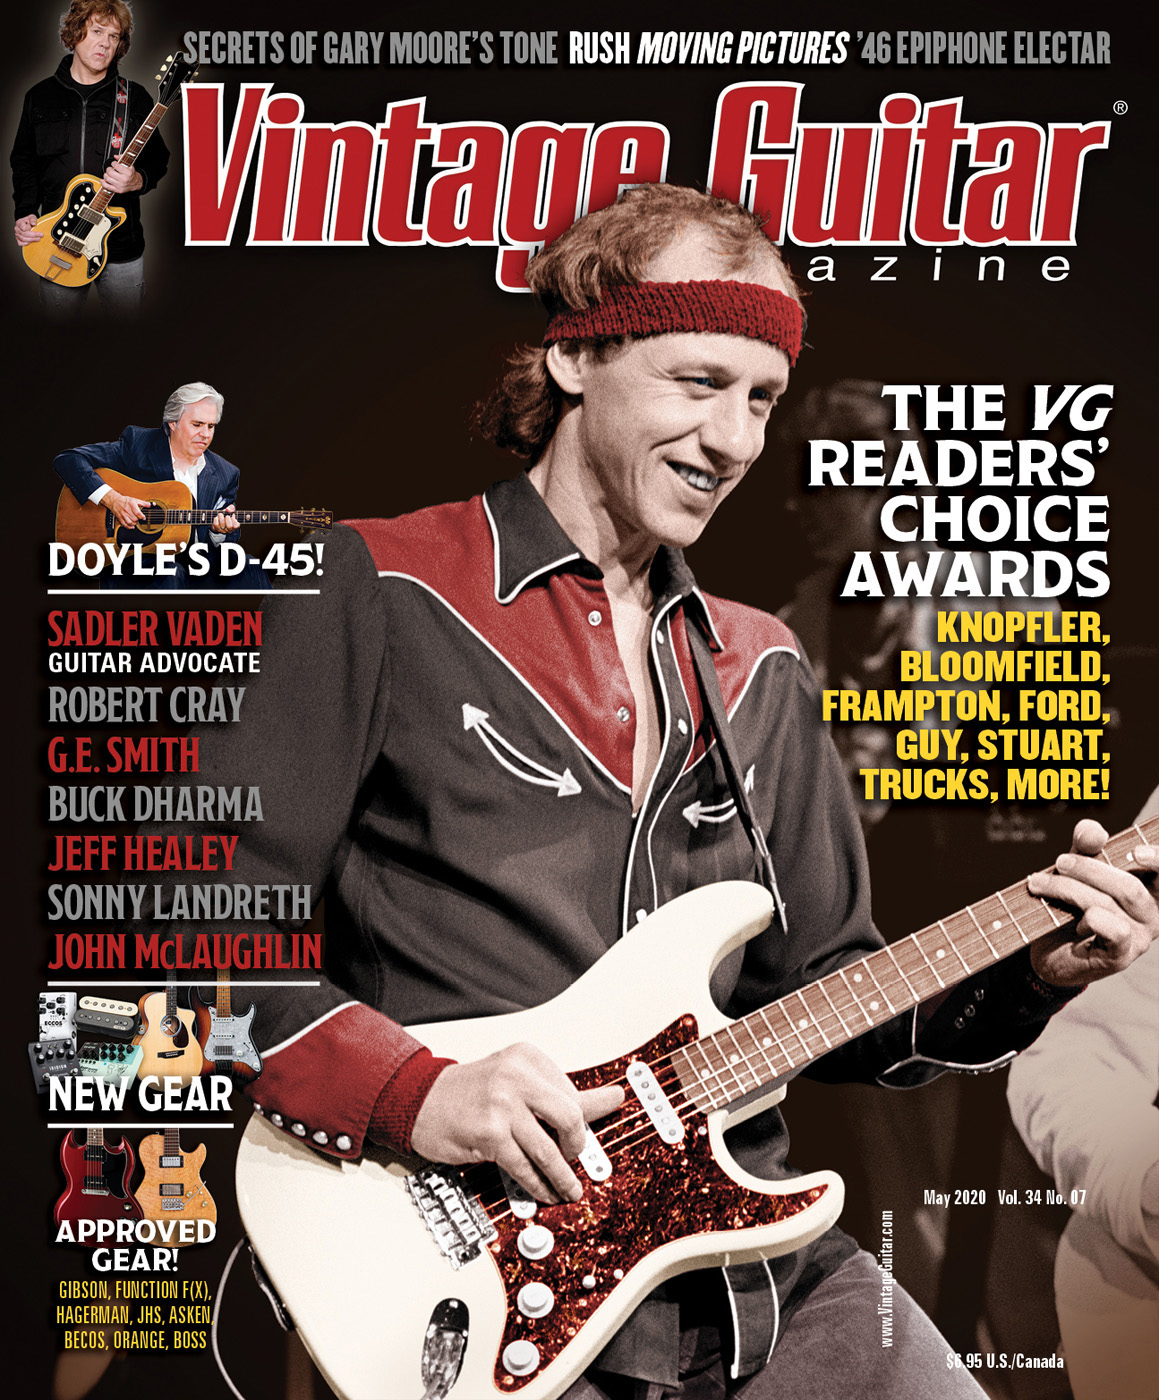 Vintage Guitar magazine May 2020 The VG Readers' Choice awards featuring Mark Knopfler